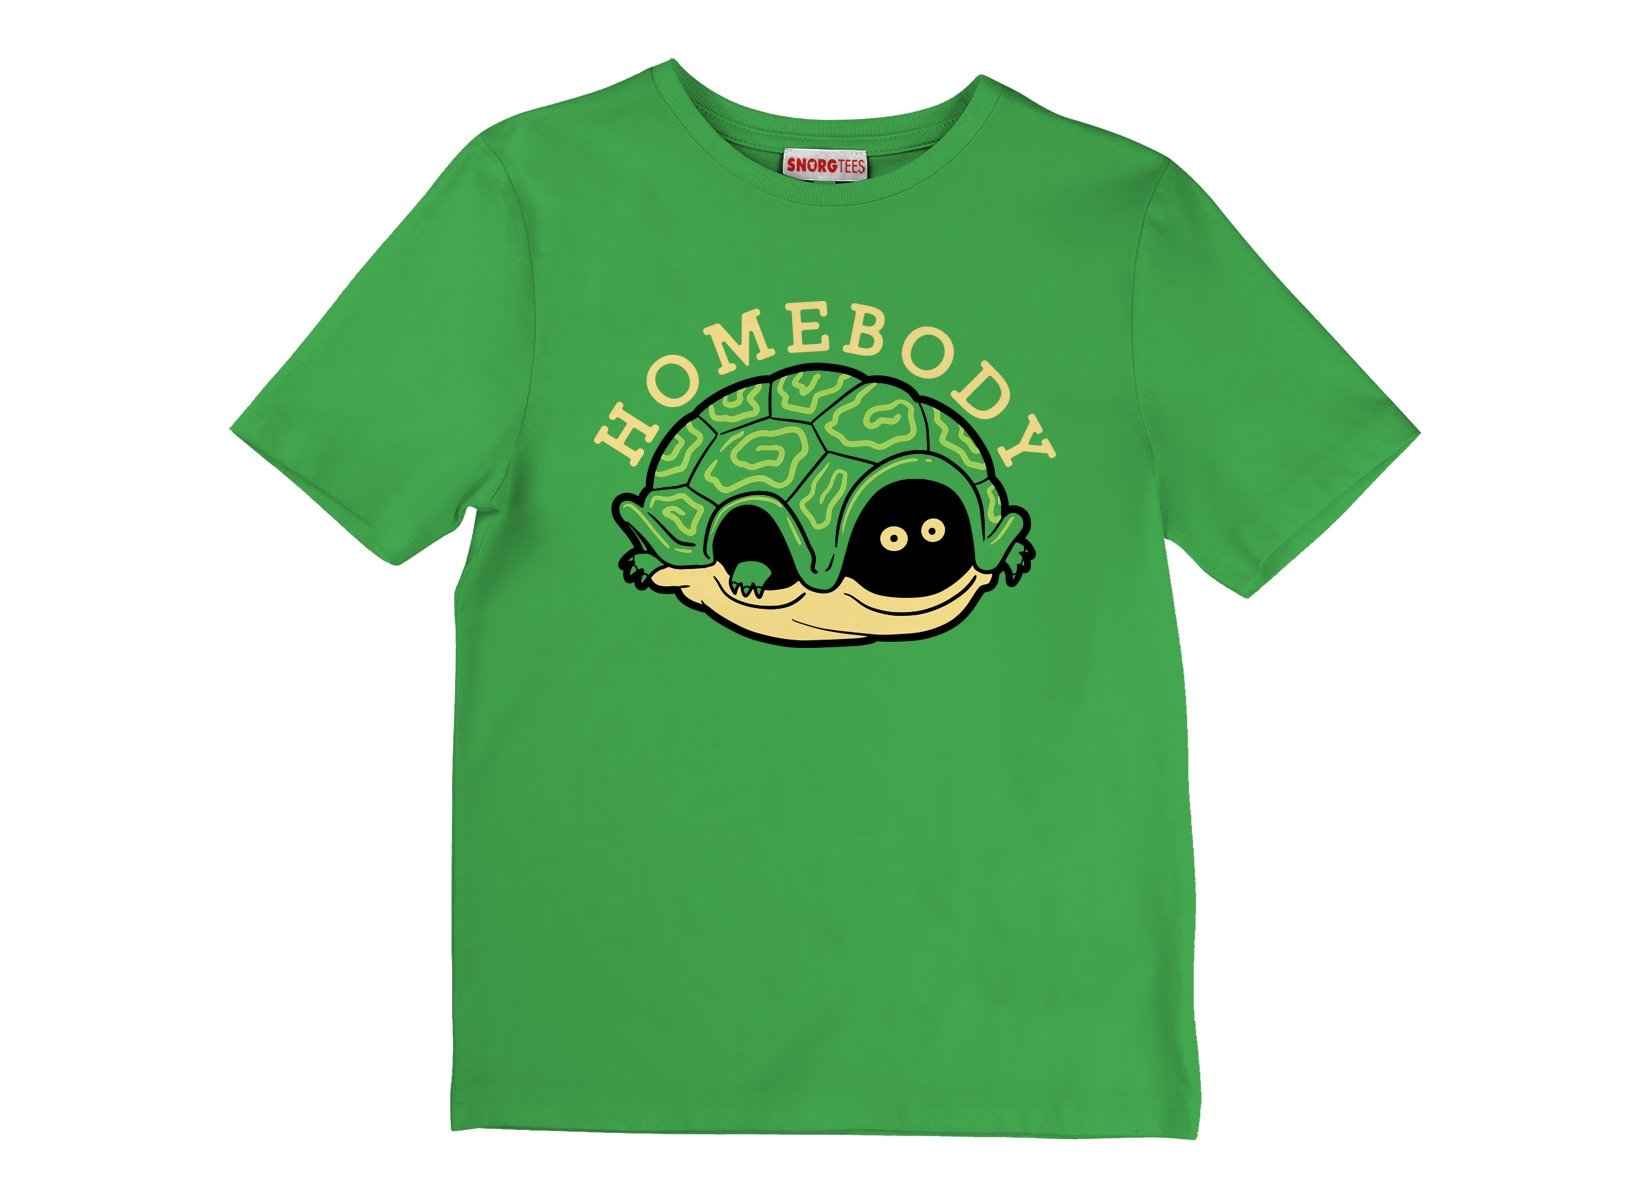 Homebody on Kids T-Shirt